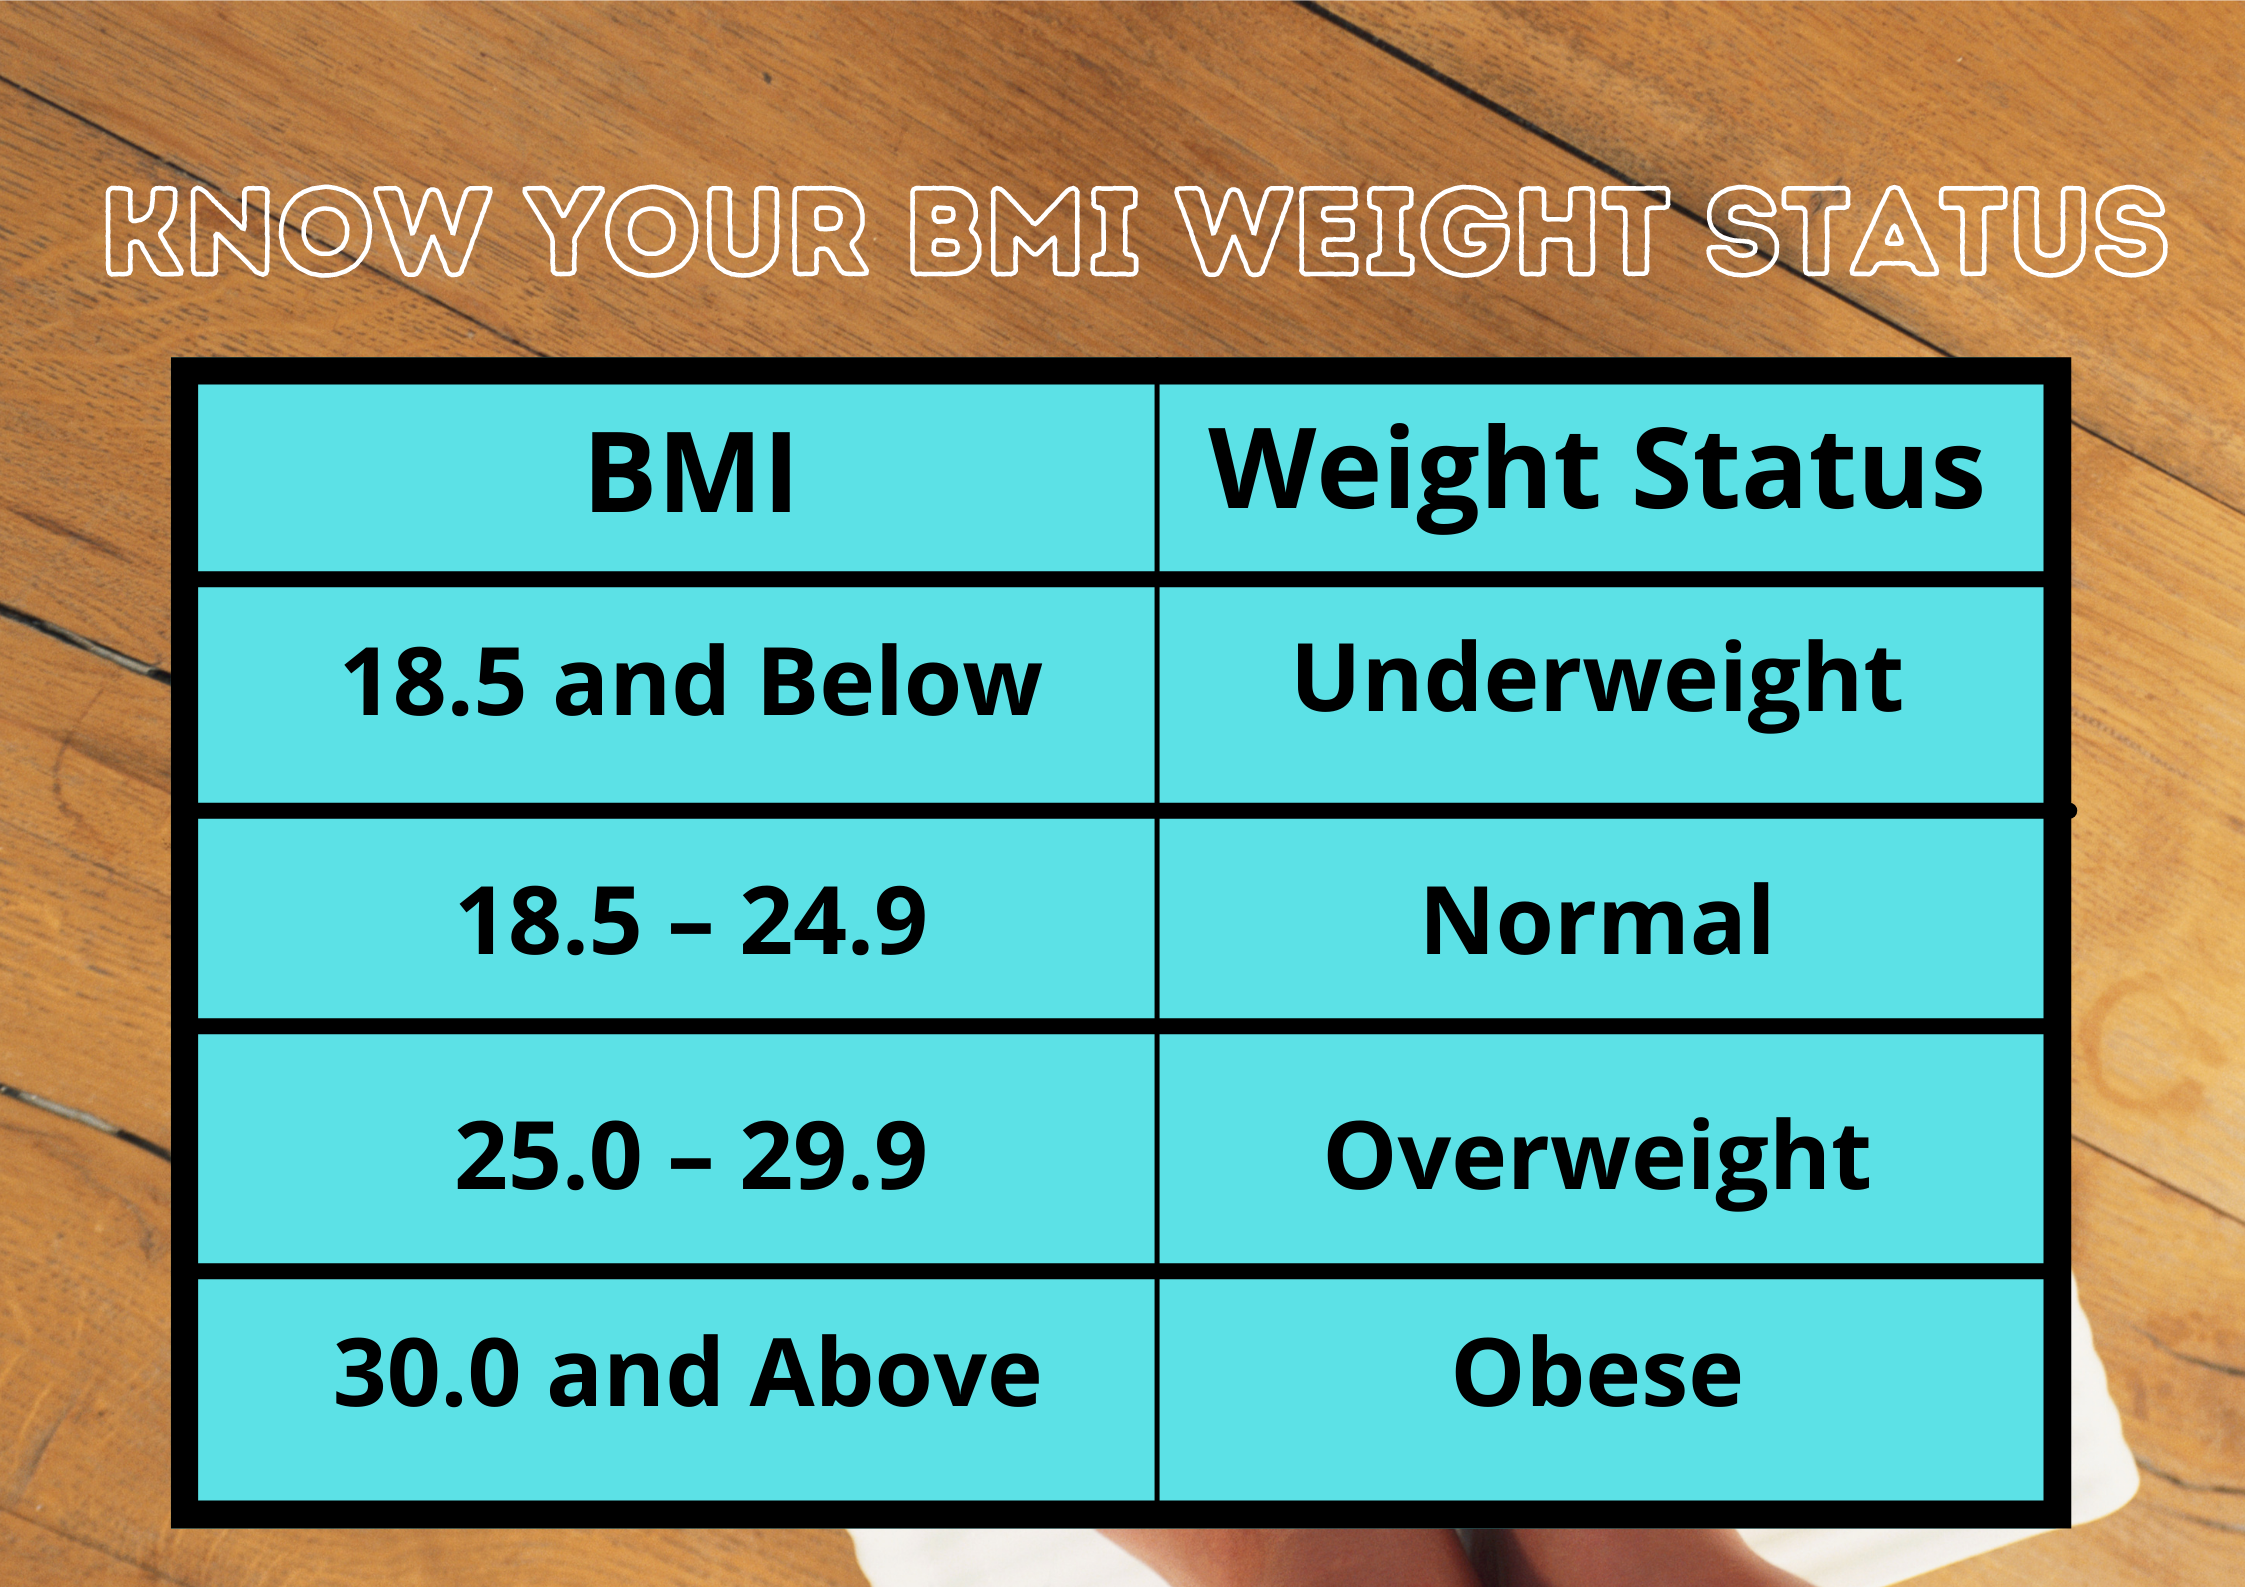 Know-your-BMI-weight-status